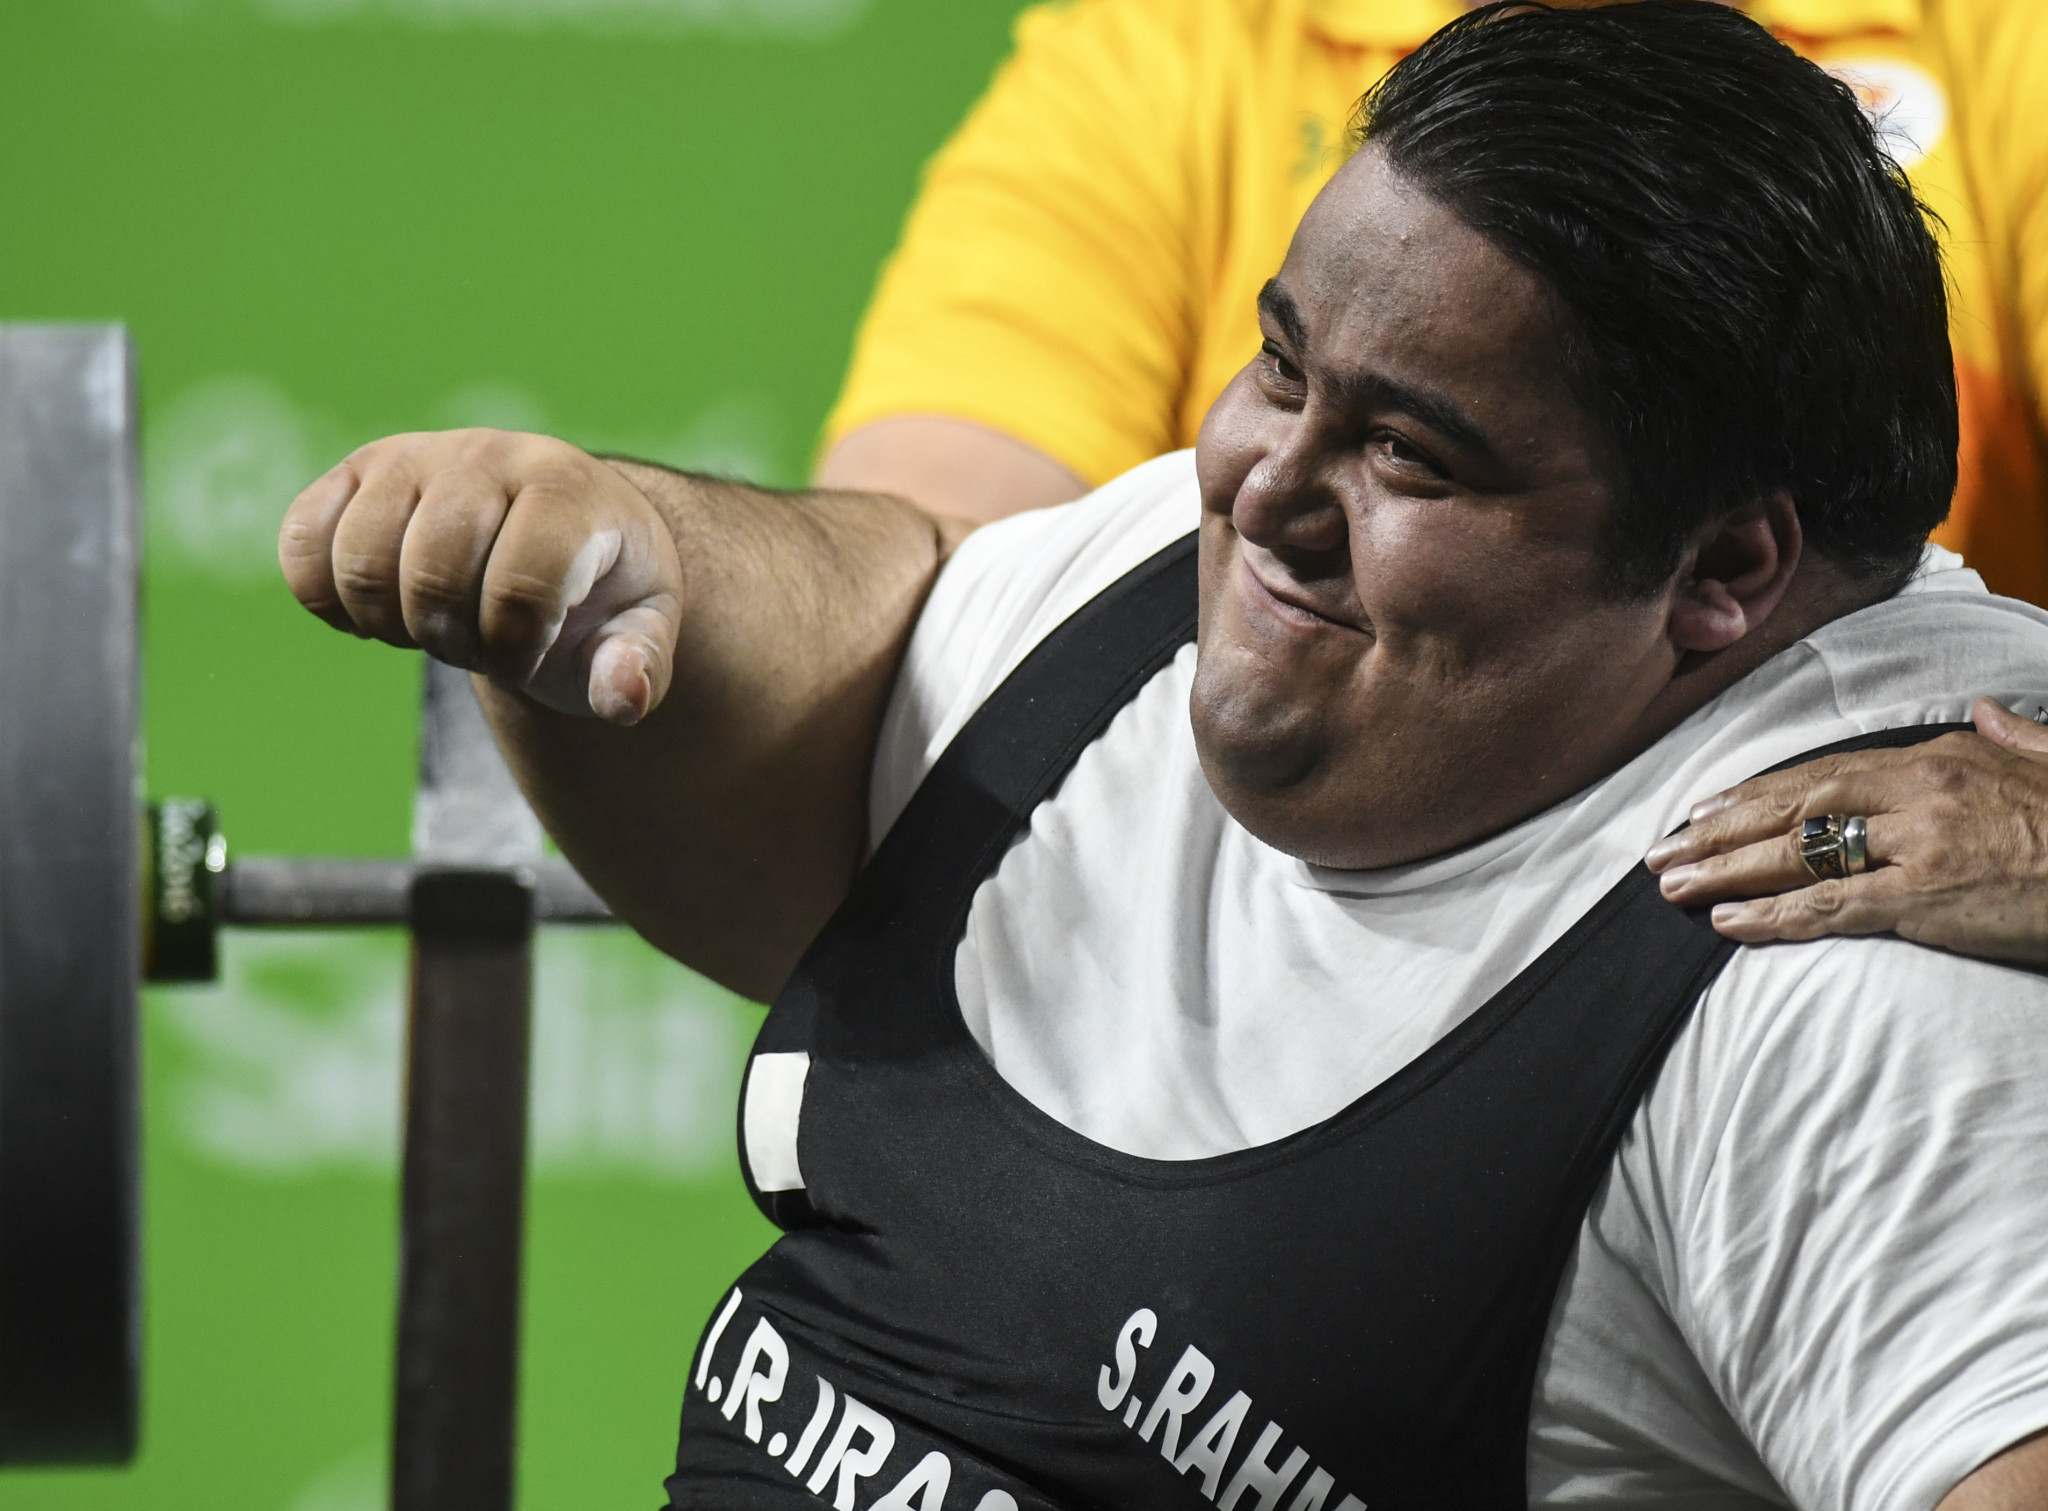 Iran's Siamand Rahman has been shortlisted for the Best Powerlifter of 2018 award following his performance at the Asia-Oceania Open Championships ©Getty Images